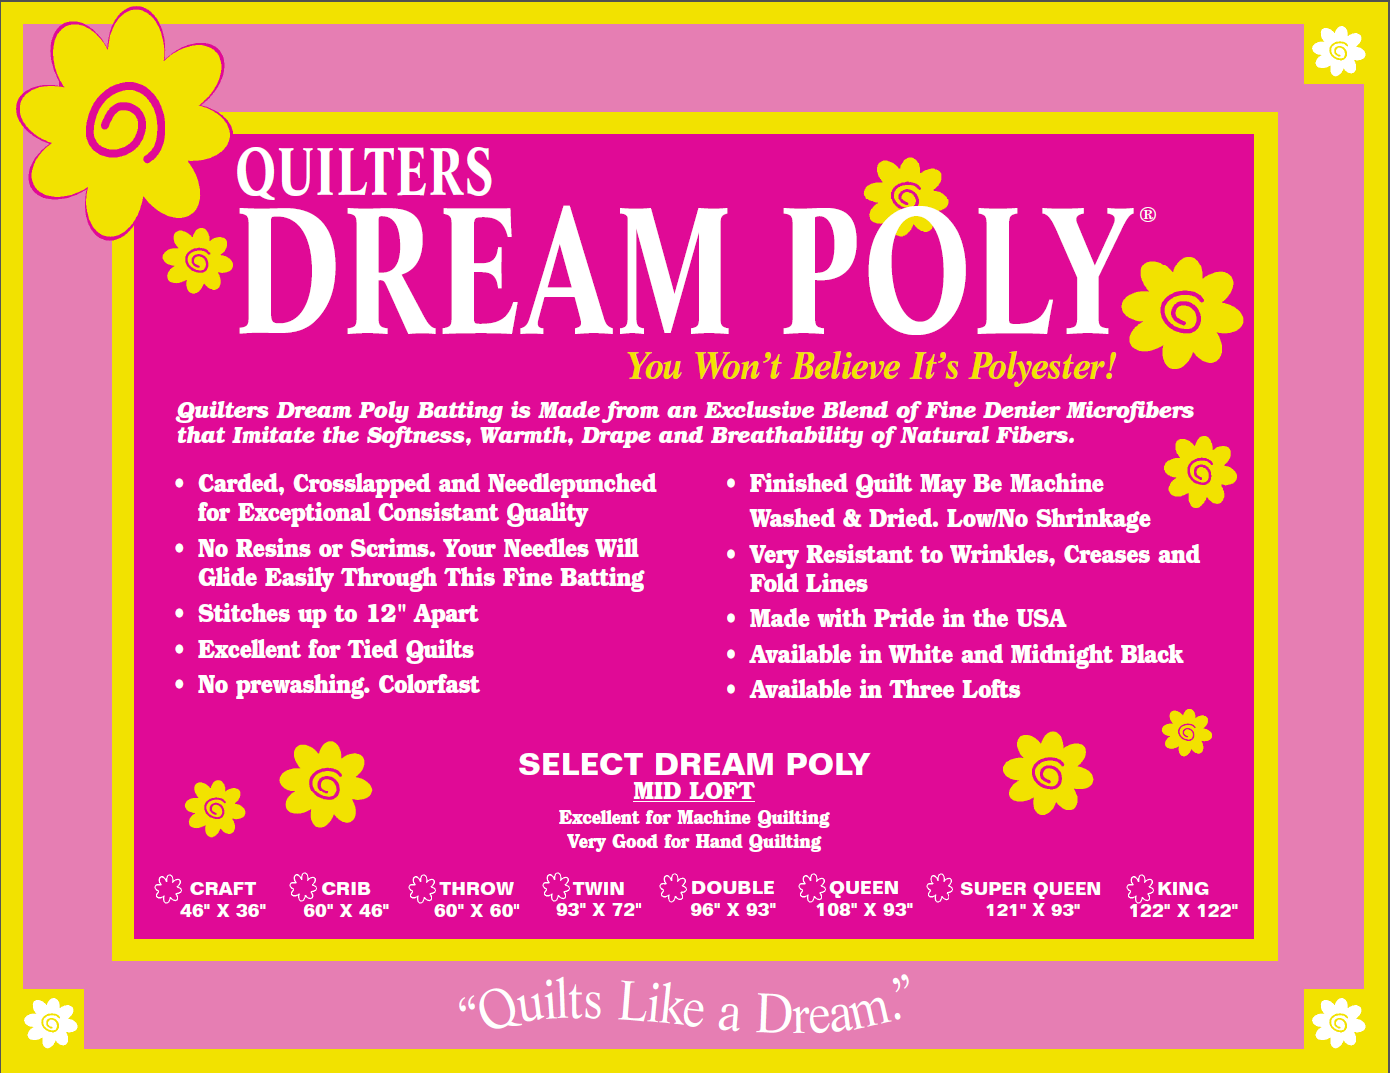 SUPER QUEEN SELECT Quilters Dream Poly